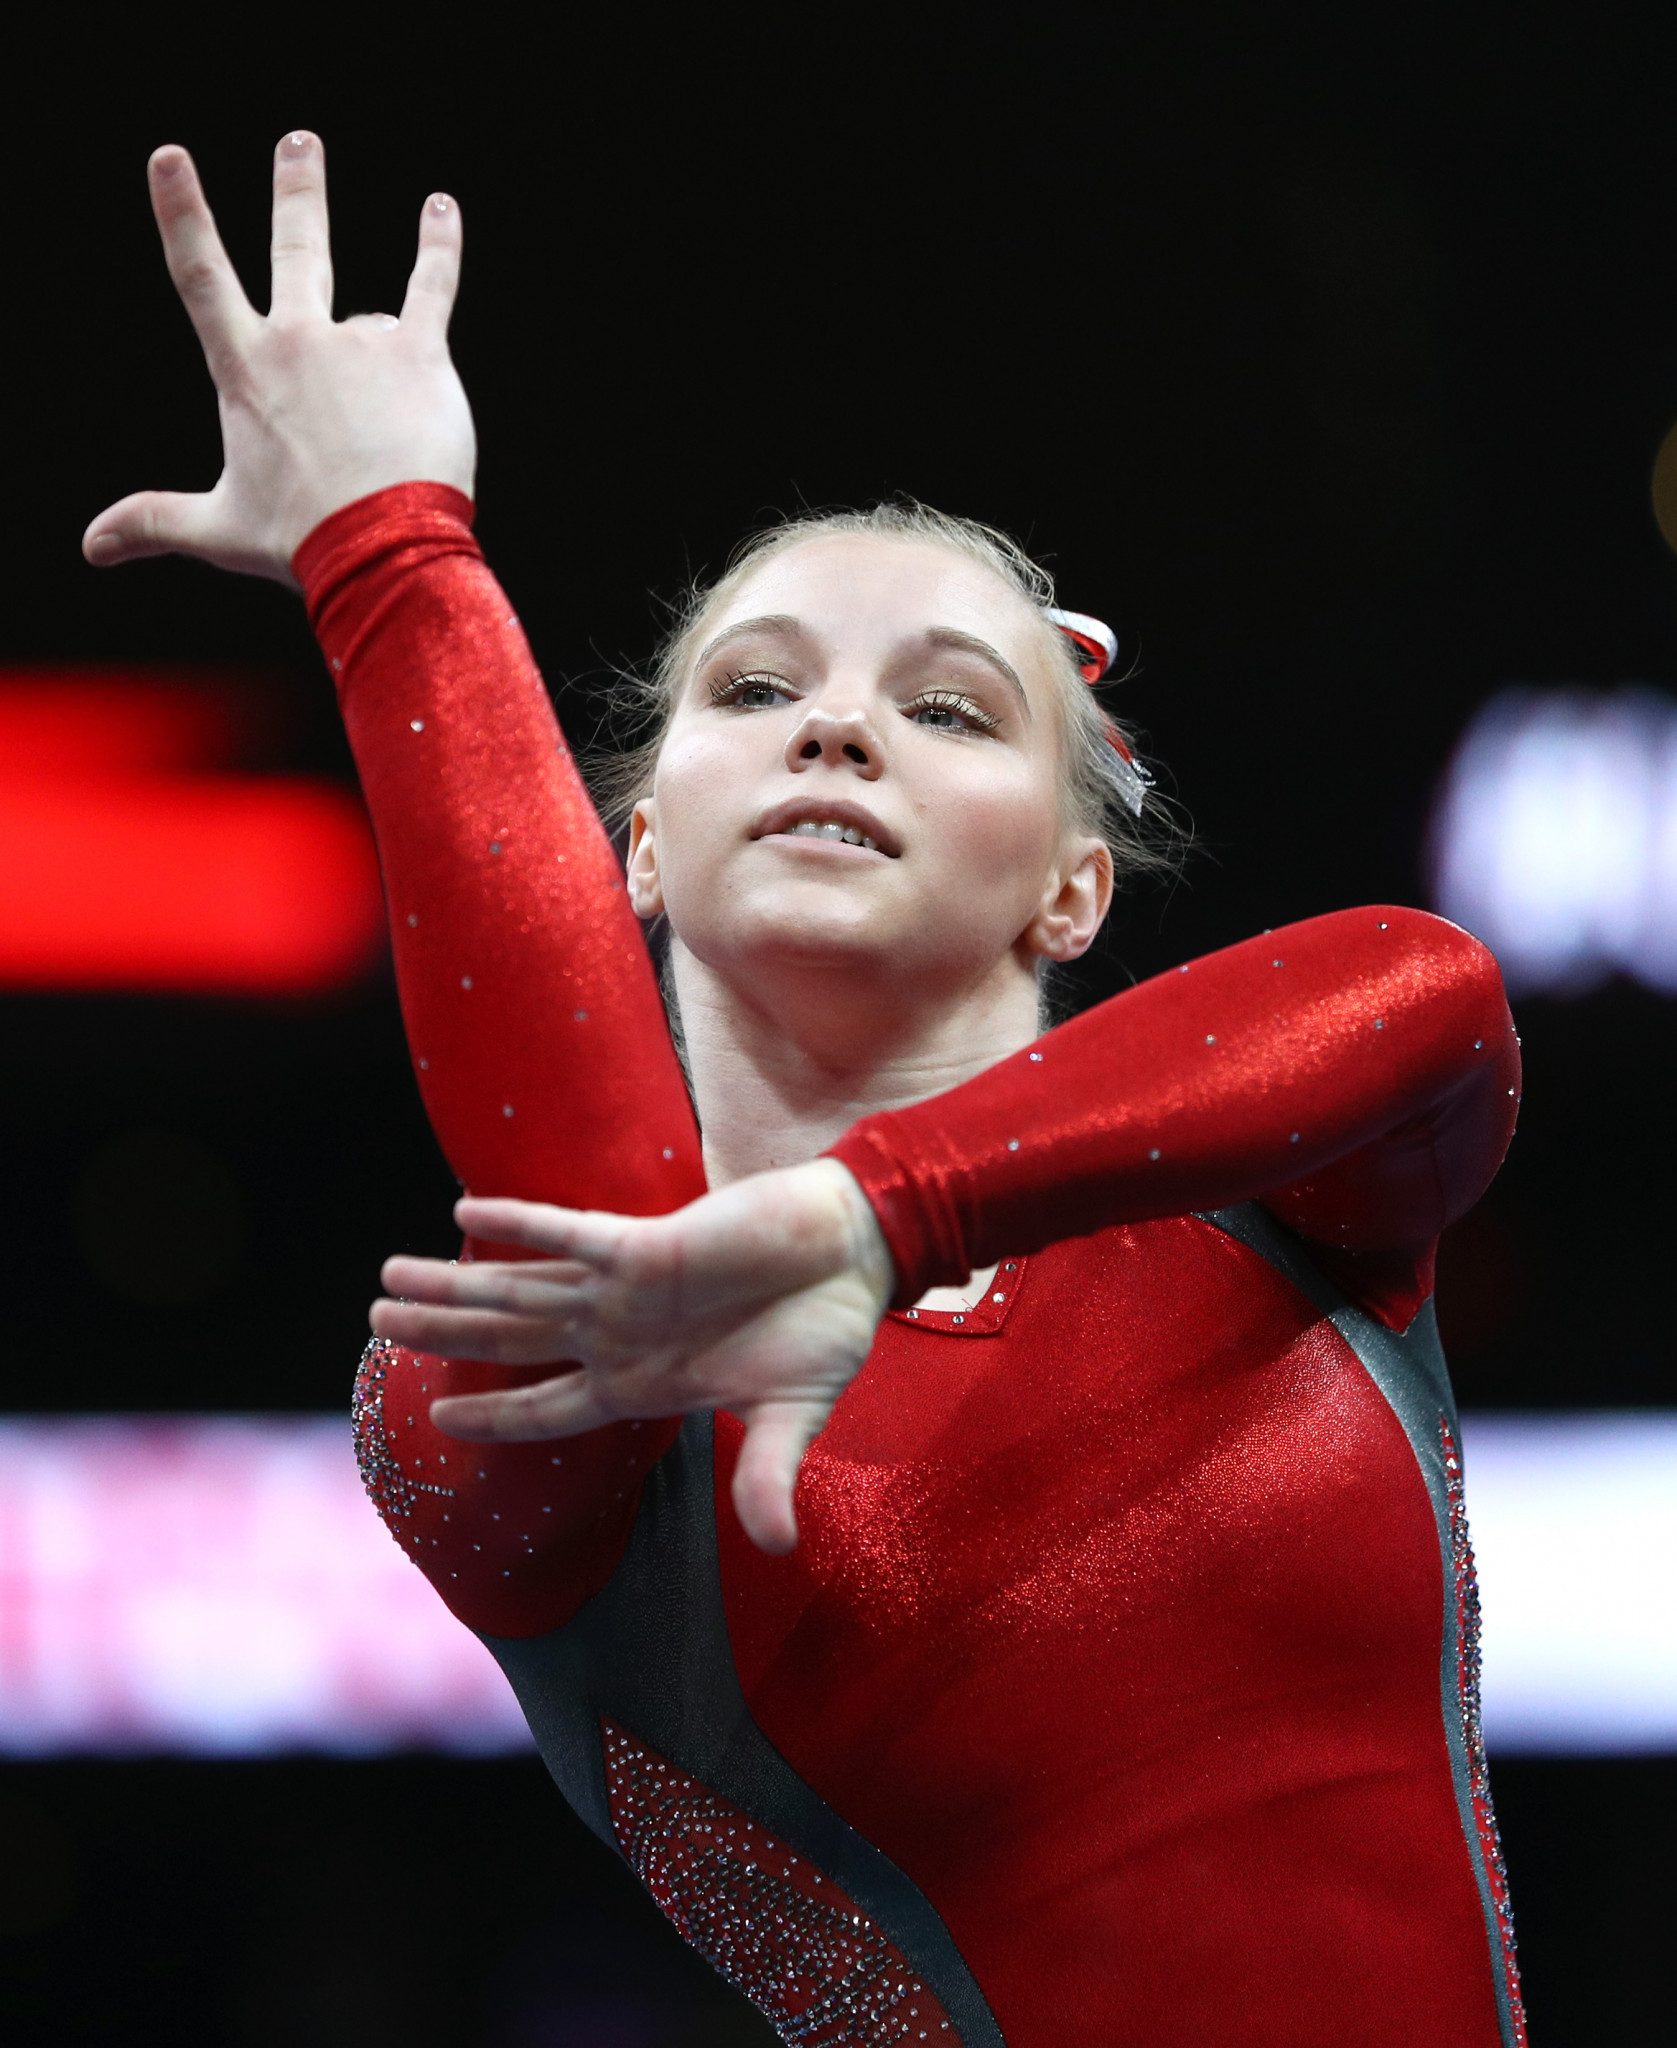 Canada's Jade Carey won the vault, scoring 14.766 points, at the FIG Individual Apparatus World Cup in Baku ©Getty Images